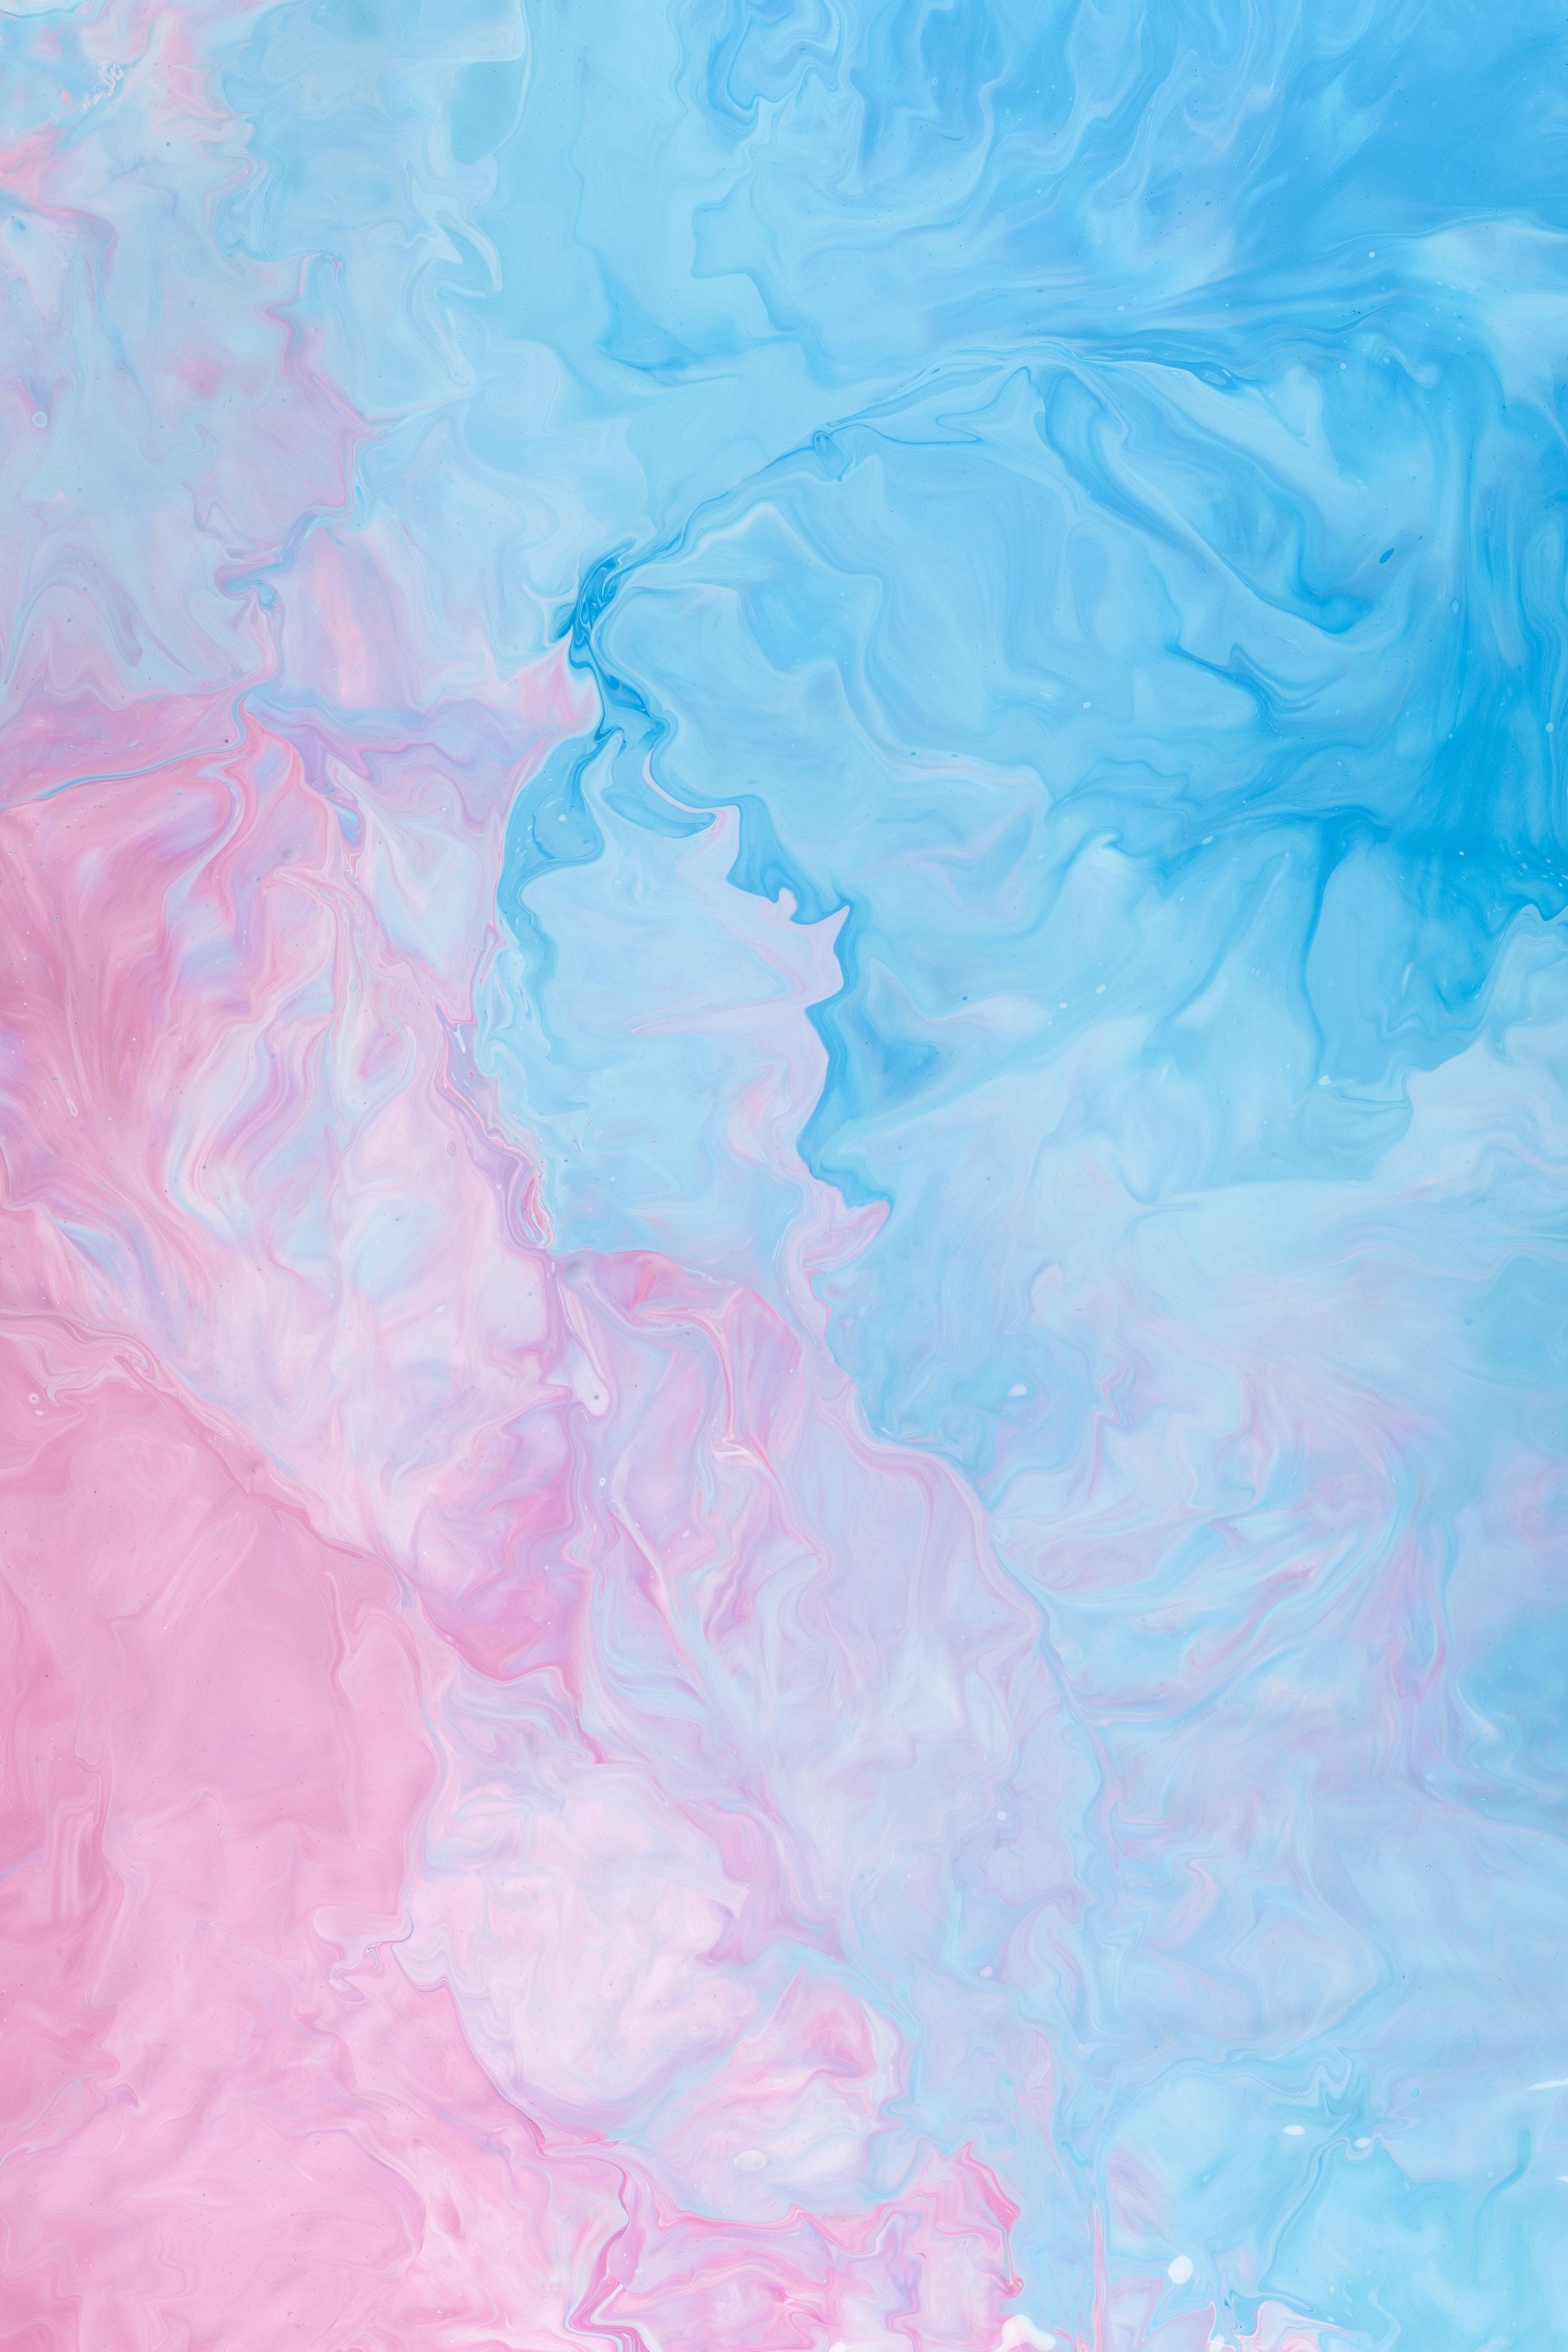 Aesthetic Backgrounds Pastel Blue : aesthetic, backgrounds, pastel, Aesthetic, Pastel, Wallpapers, Wallpaper